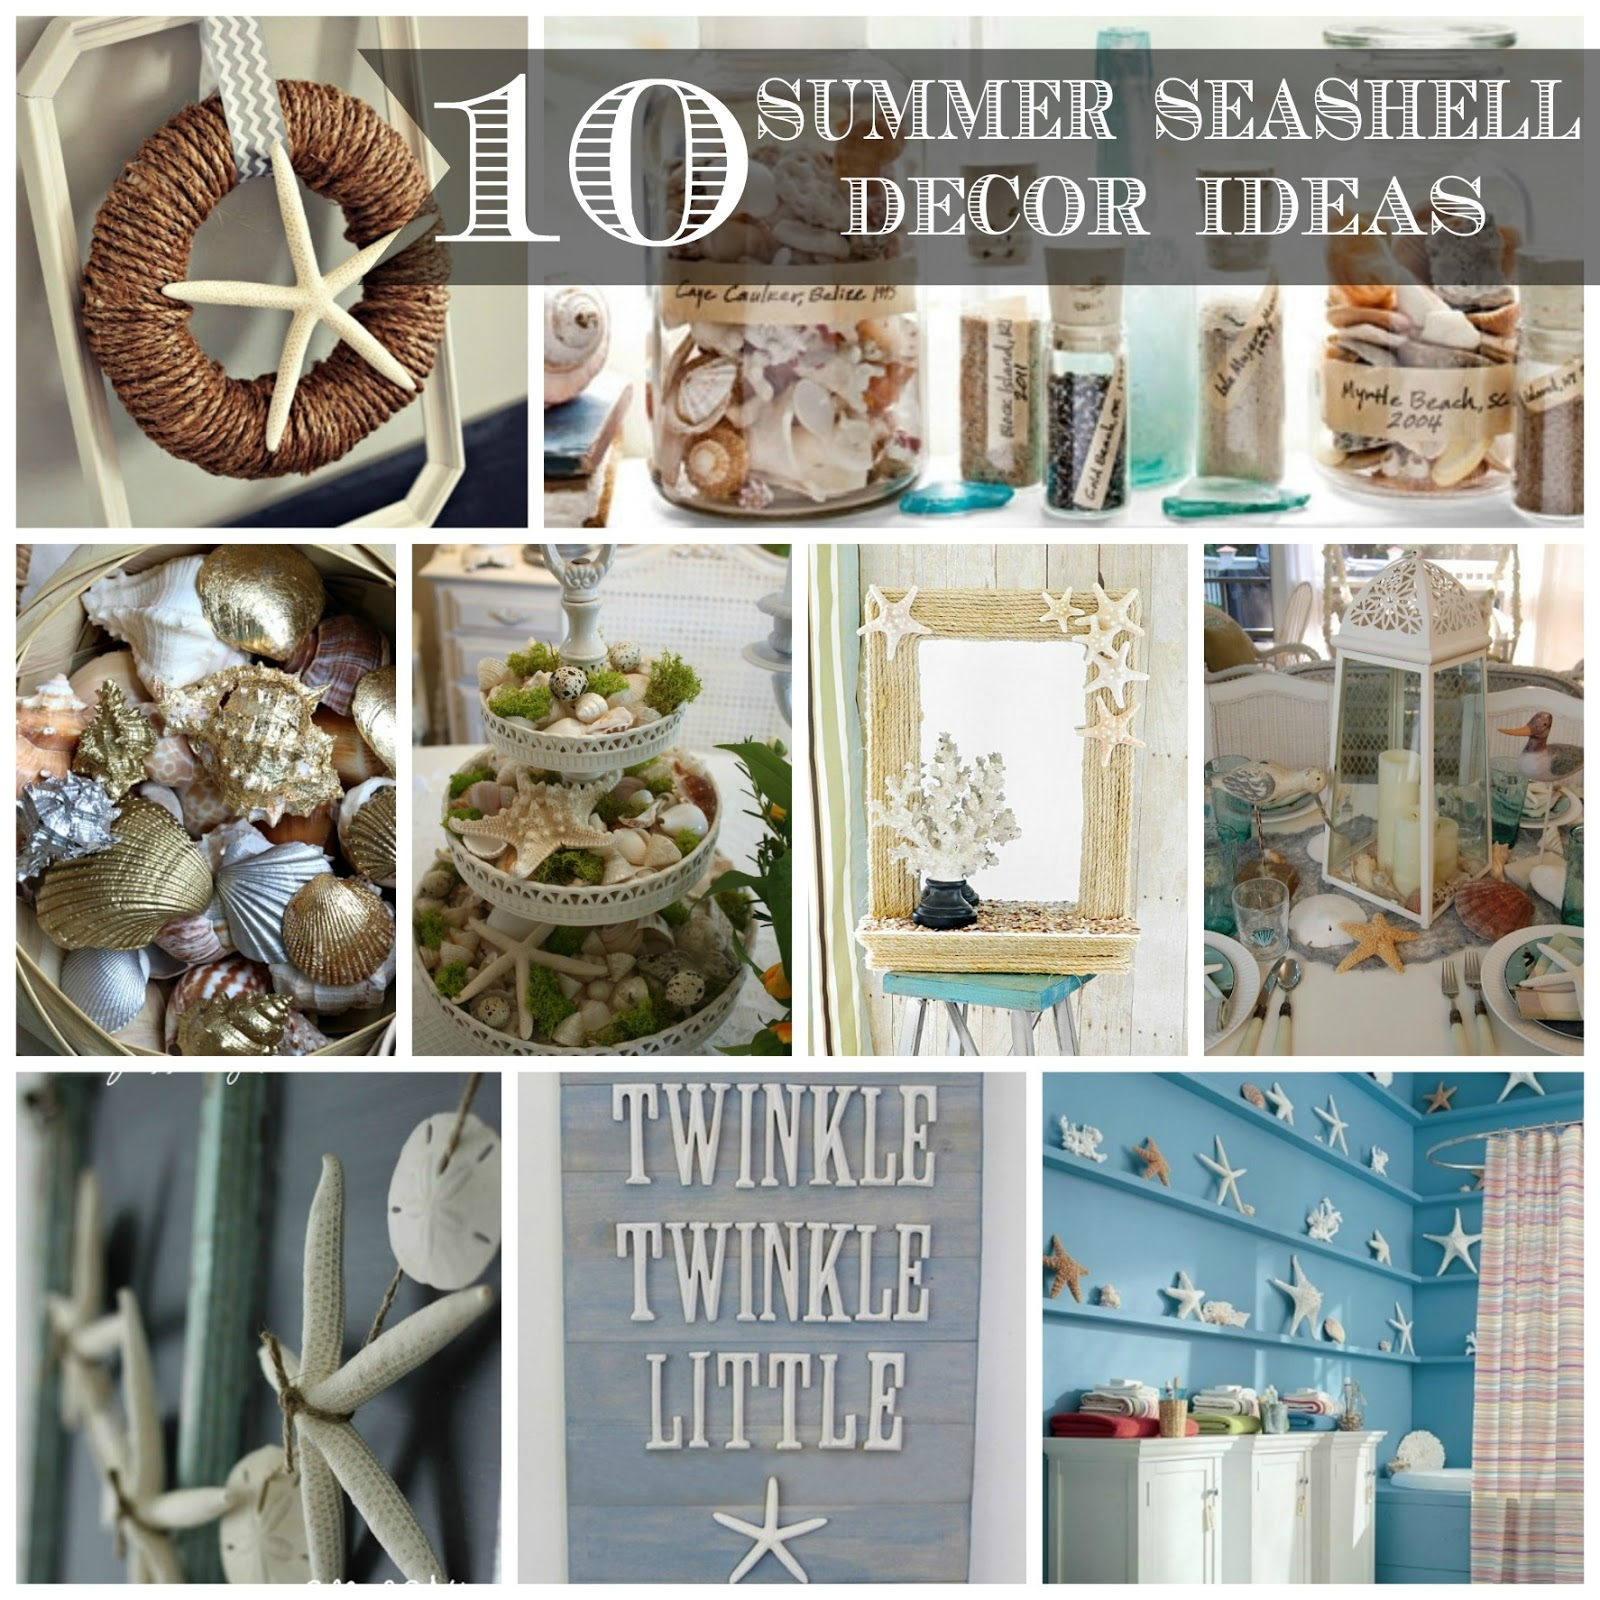 Simply Designing with Ashley: 10 Summer Seashell Decor Ideas